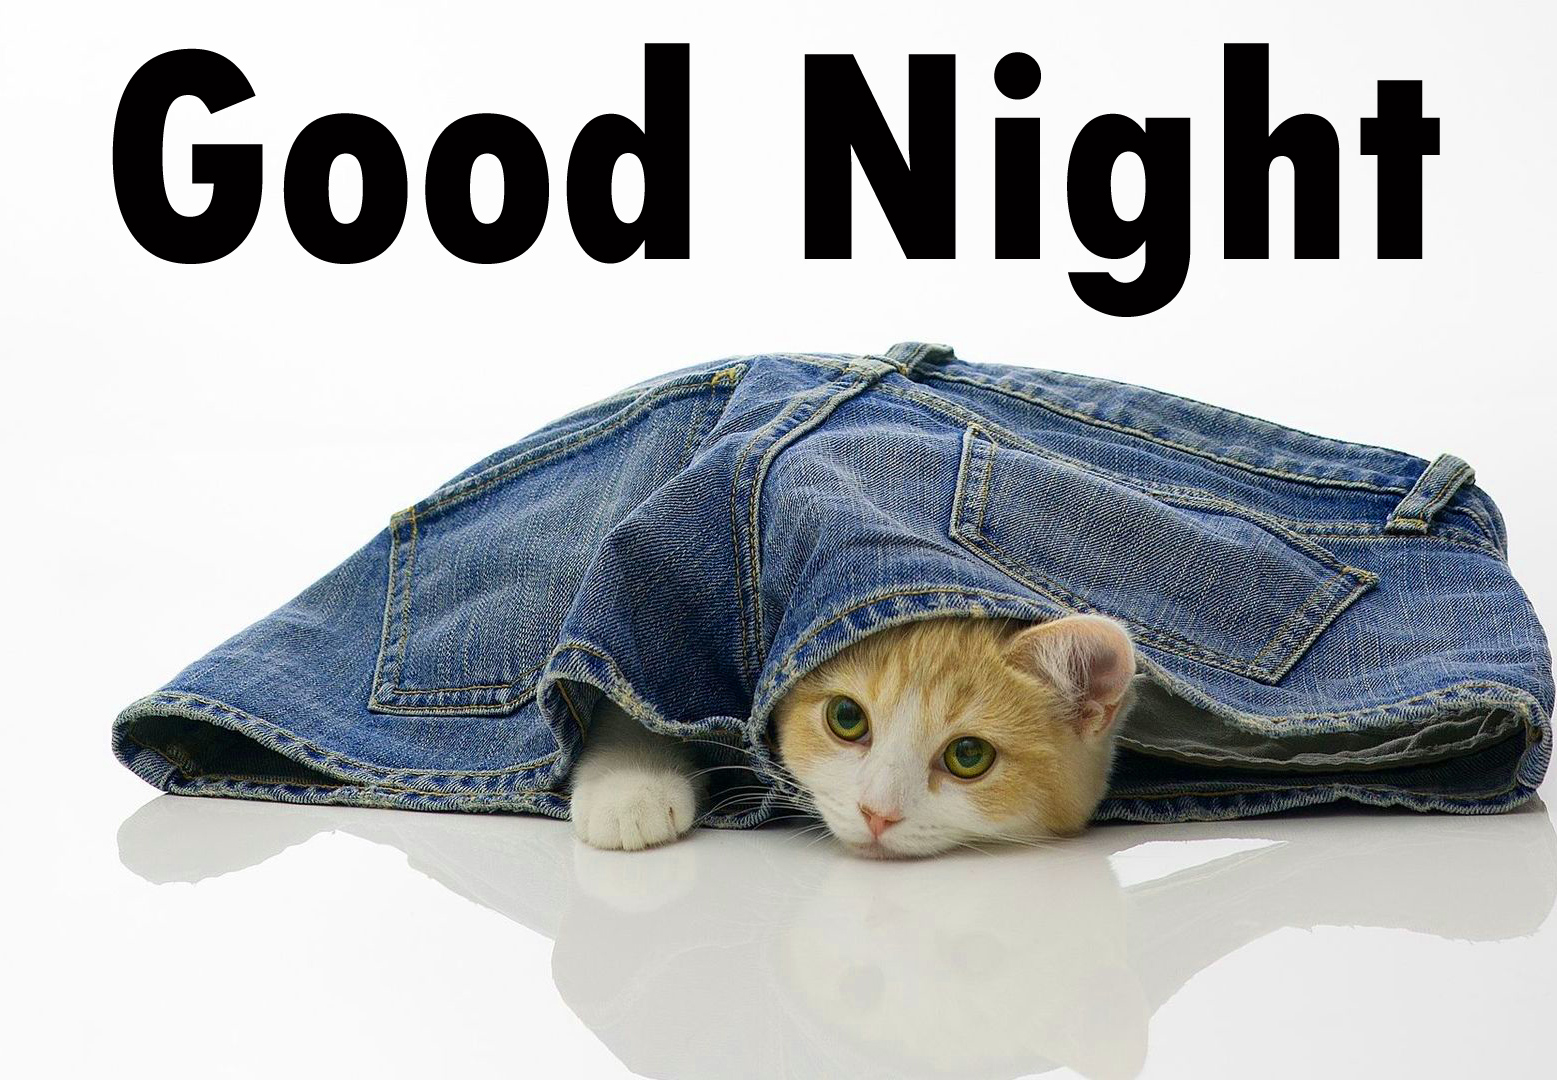 Funny Good night Images Wallpaper photo Pics Pictures HD